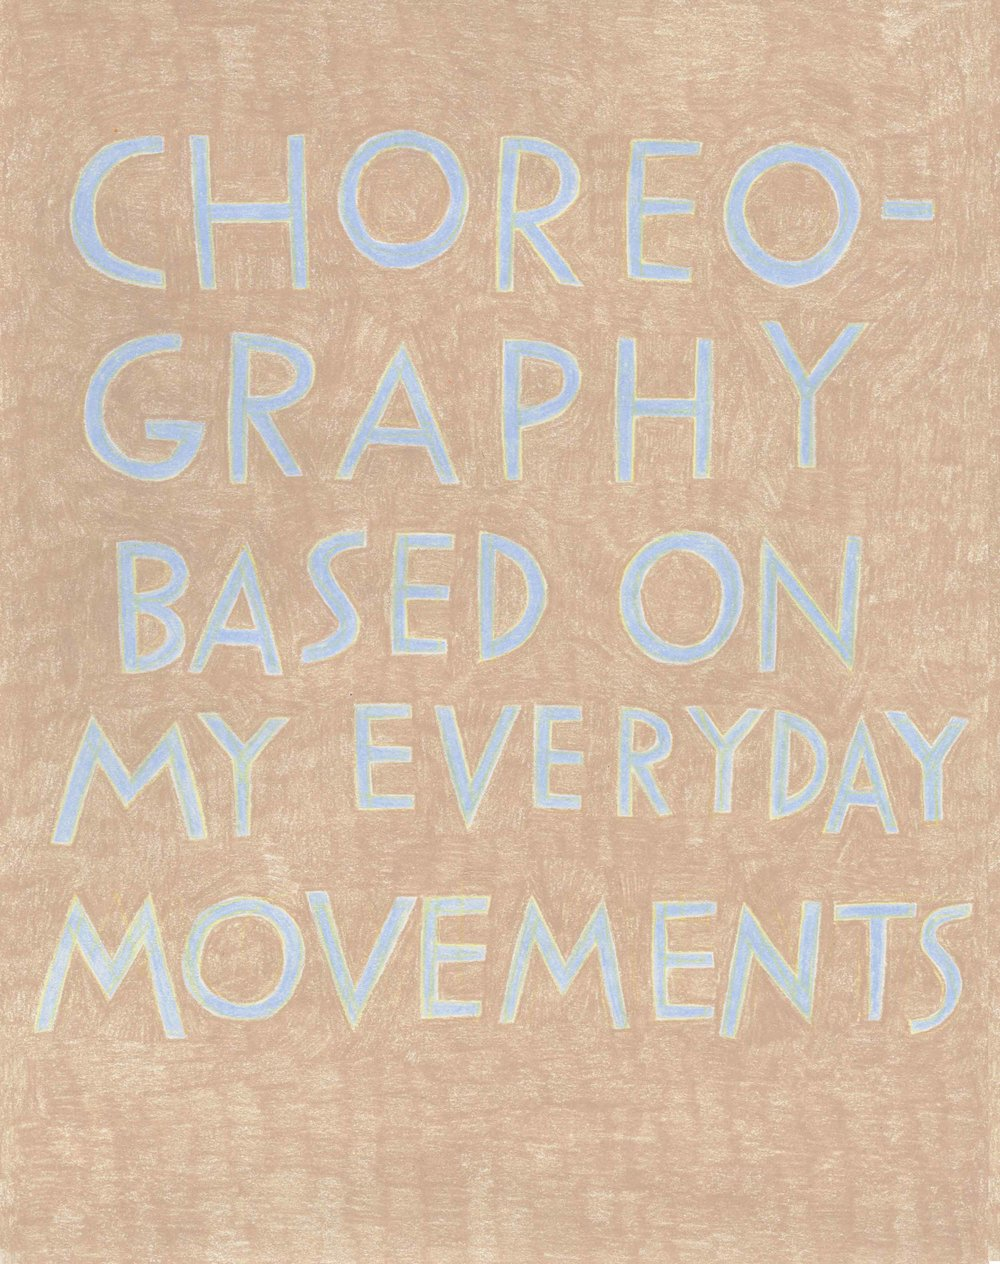 """Choreography based on my everyday movements,"" in light blue on beige."